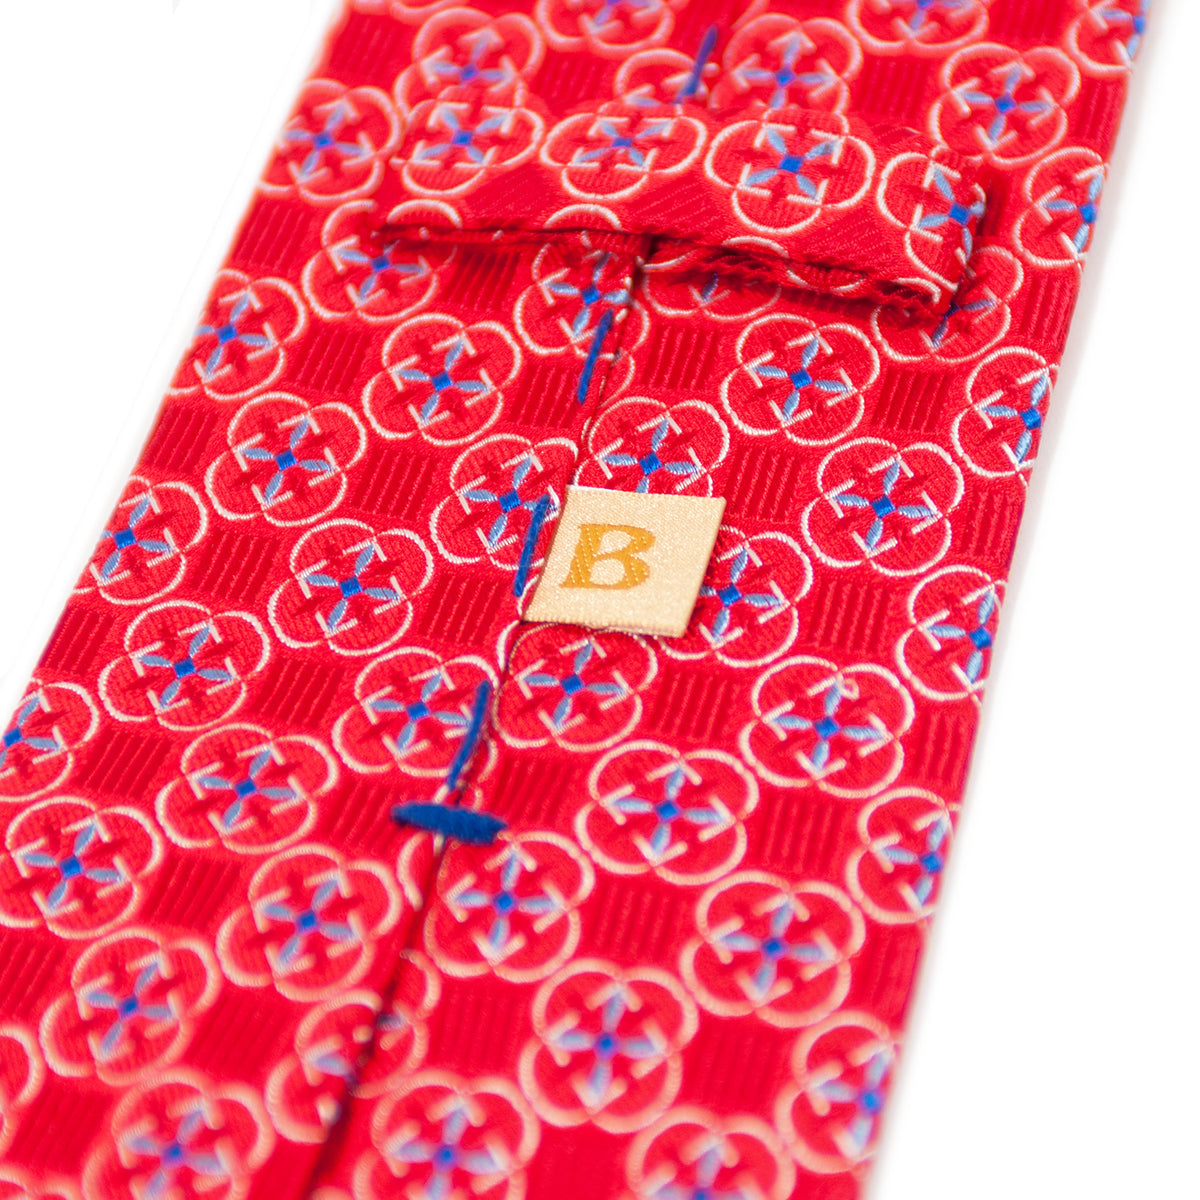 Braemore Red Geometric Patterned Silk Tie. Luxmrkt.com menswear consignment Edmonton